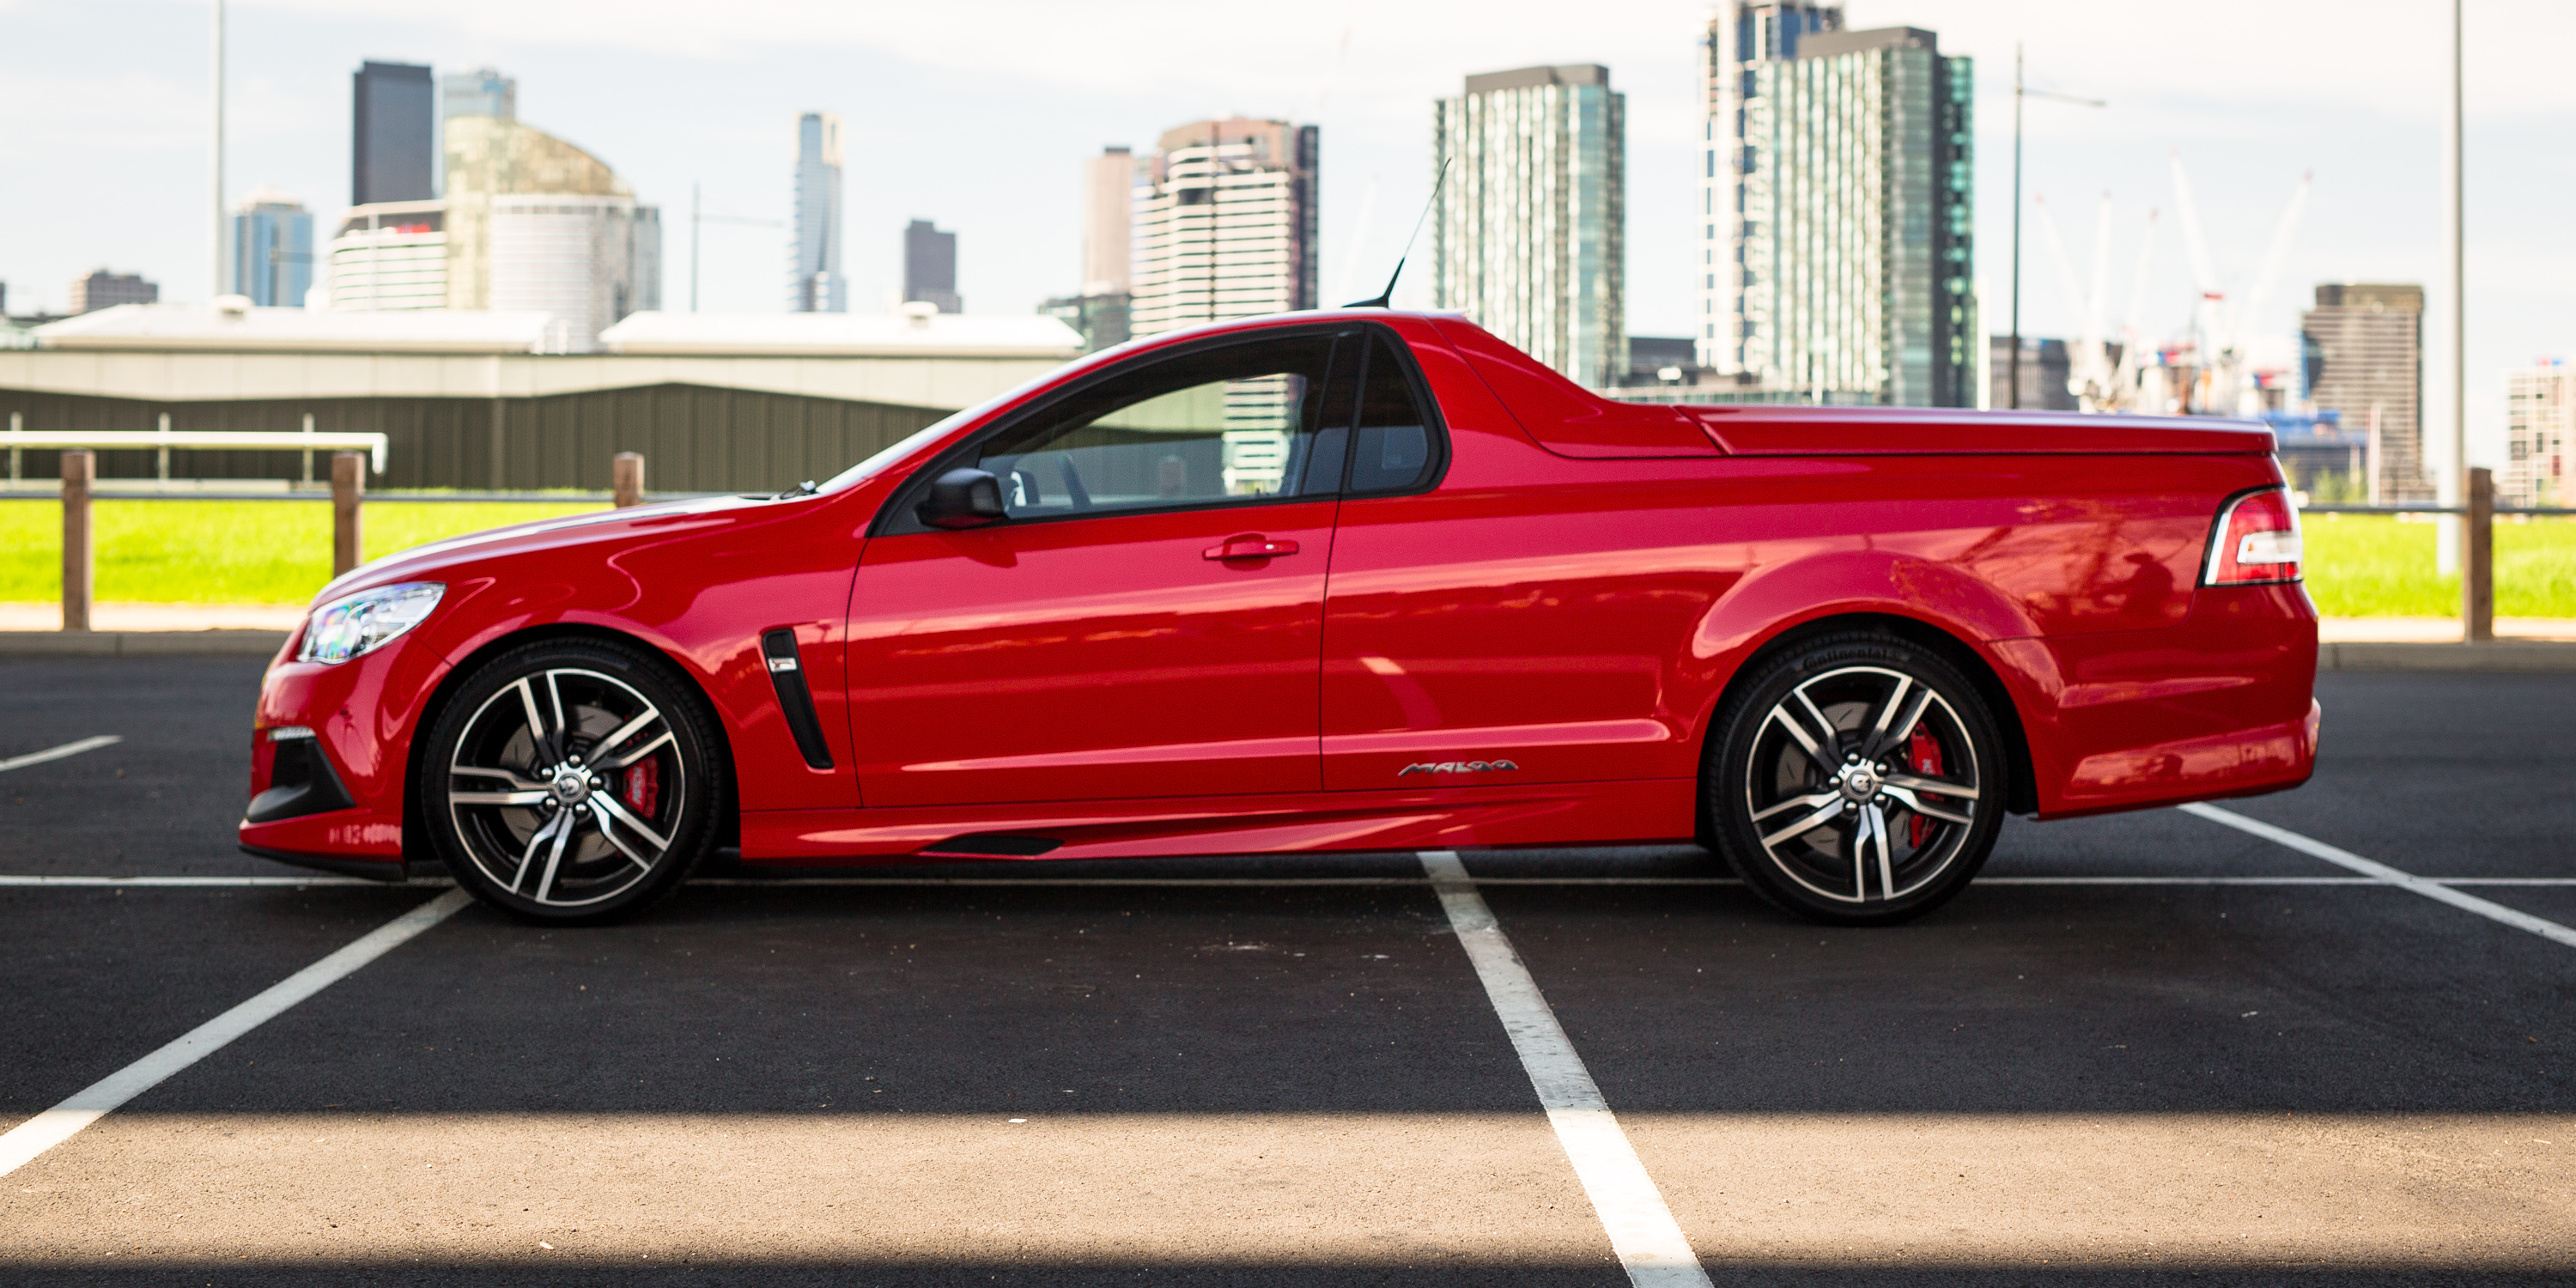 2016 Hsv Maloo Lsa Review Caradvice